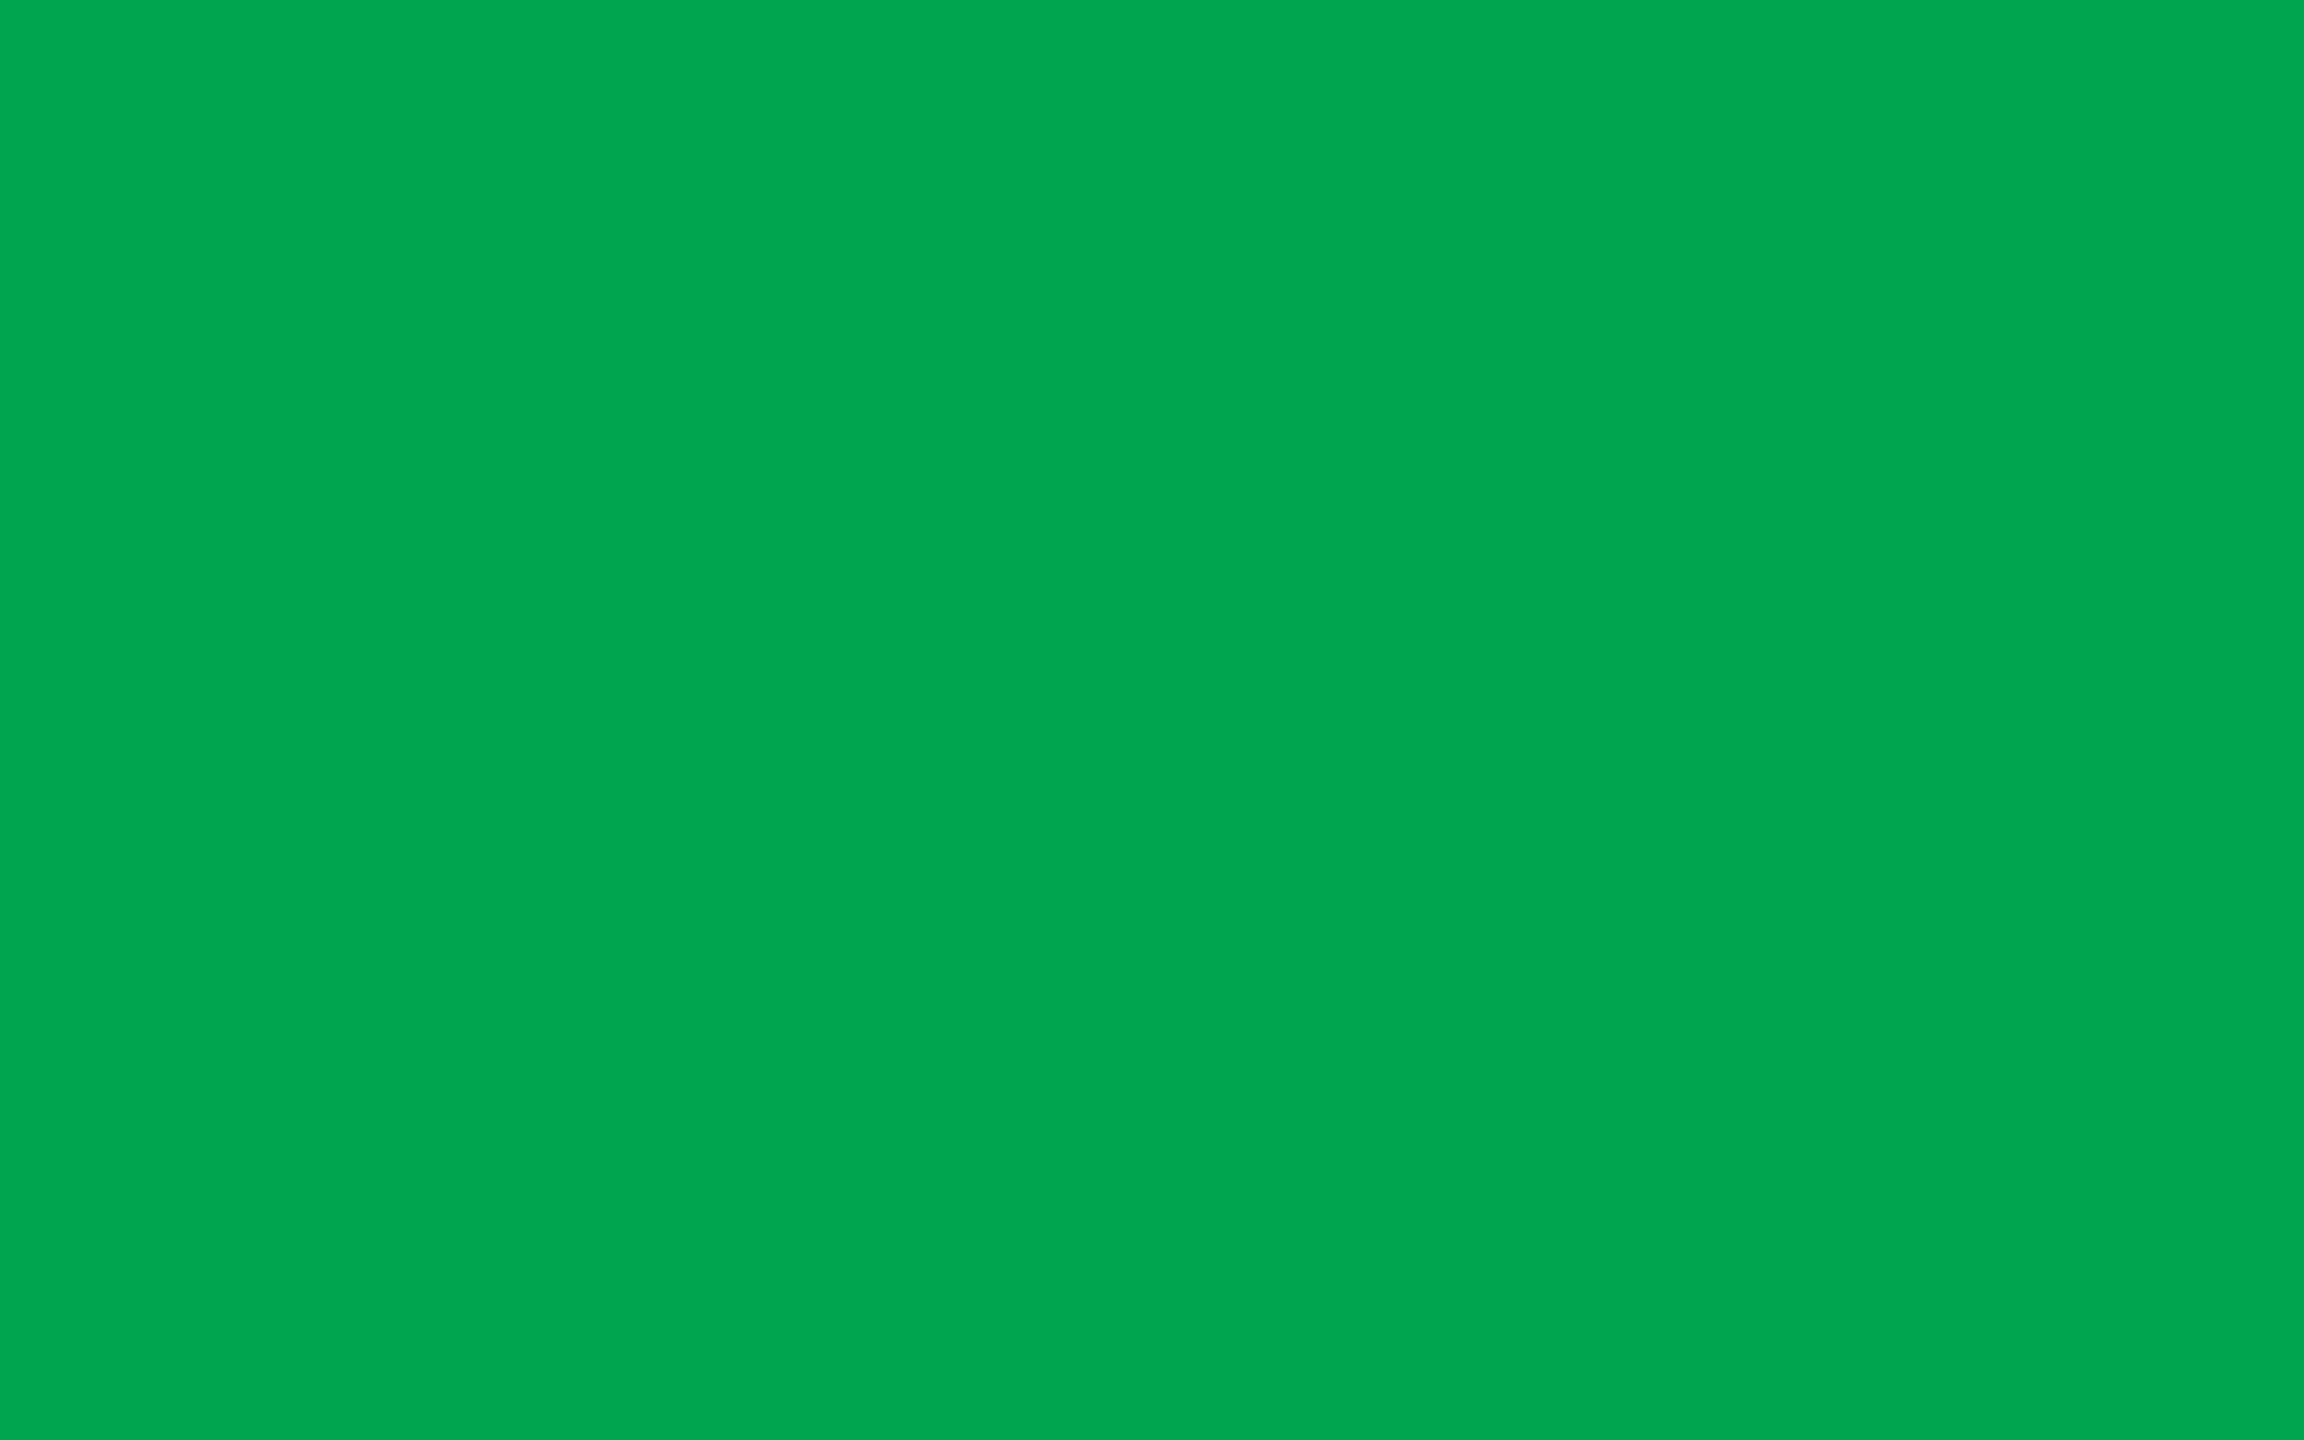 2304x1440 Green Pigment Solid Color Background